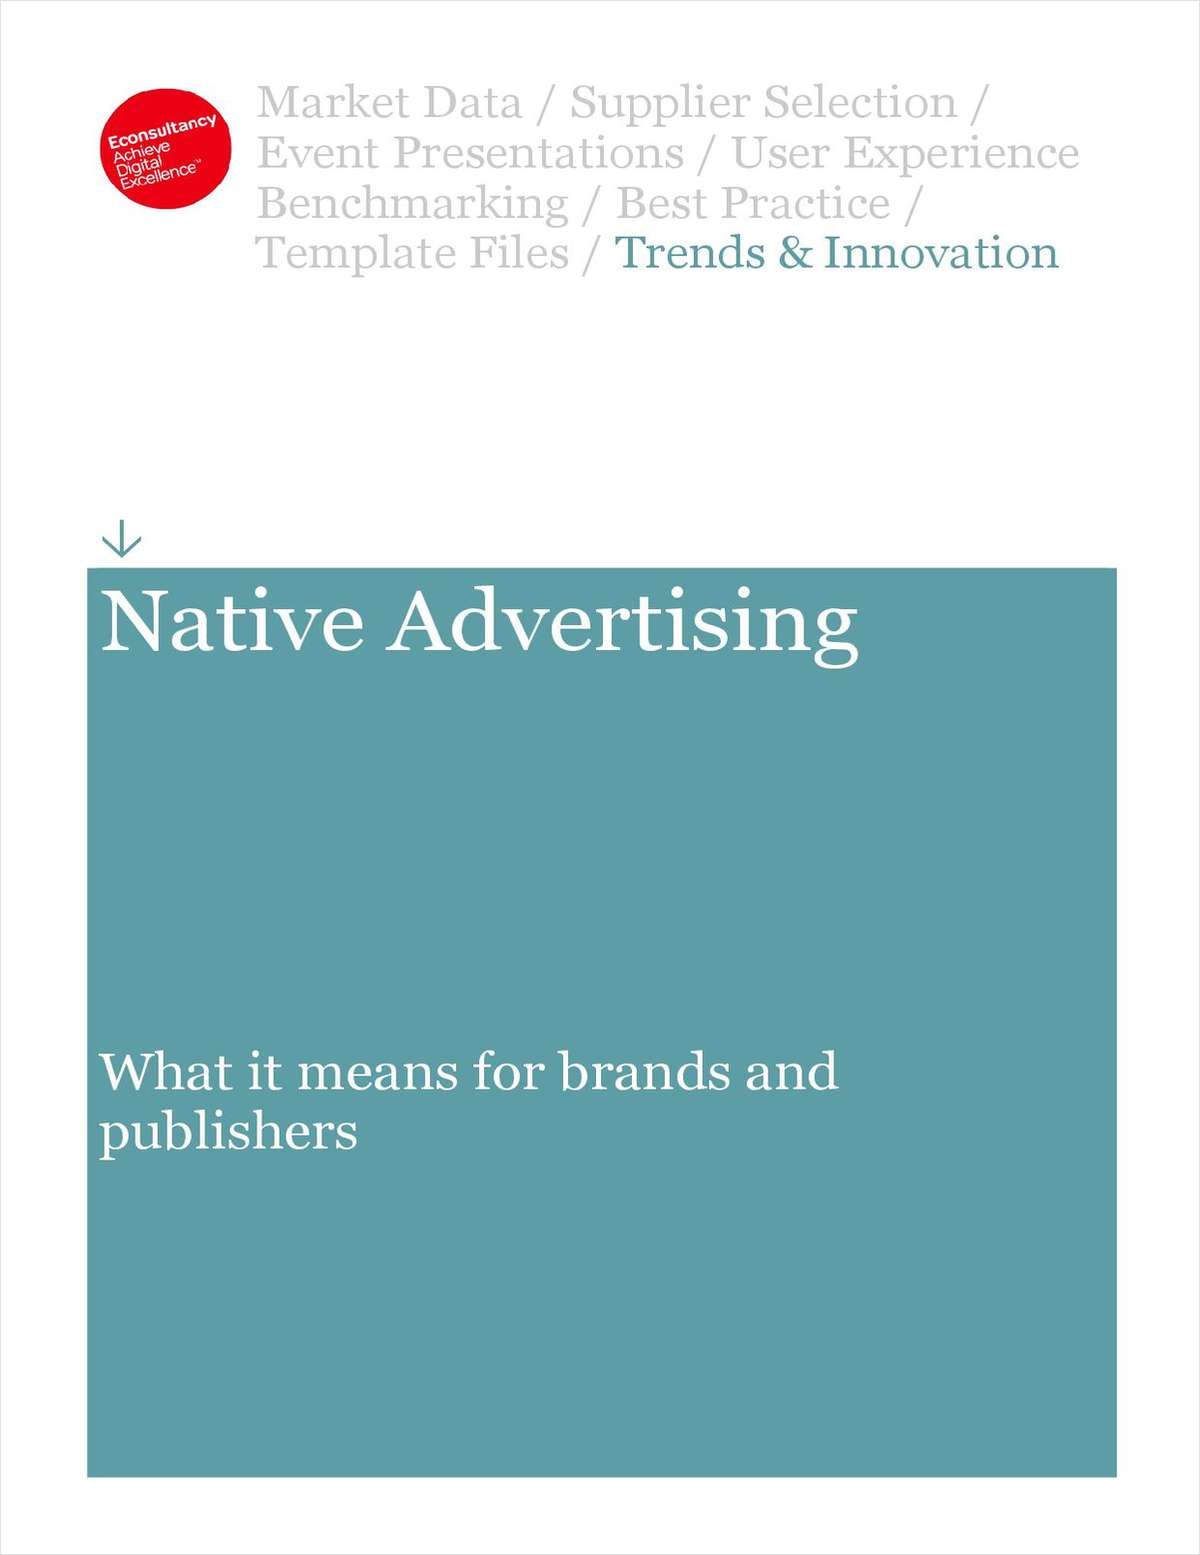 Native Advertising: What it means for brands and publishers - An Excerpt